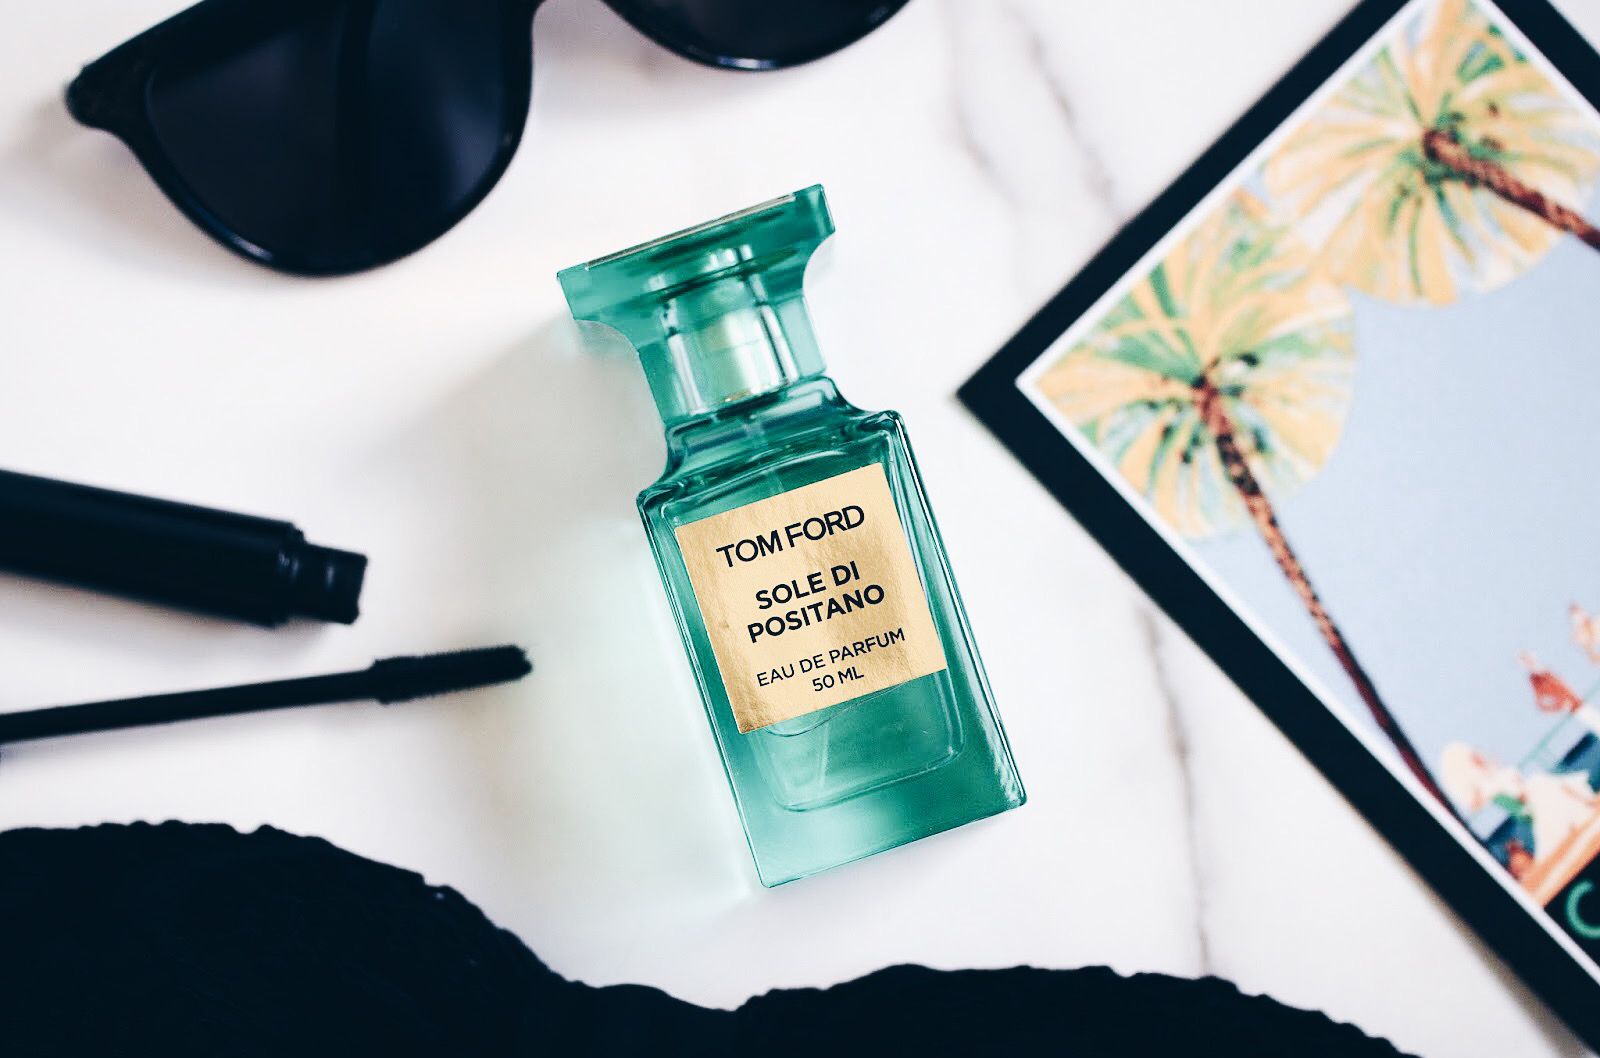 tom ford sole di positano parfum avis test